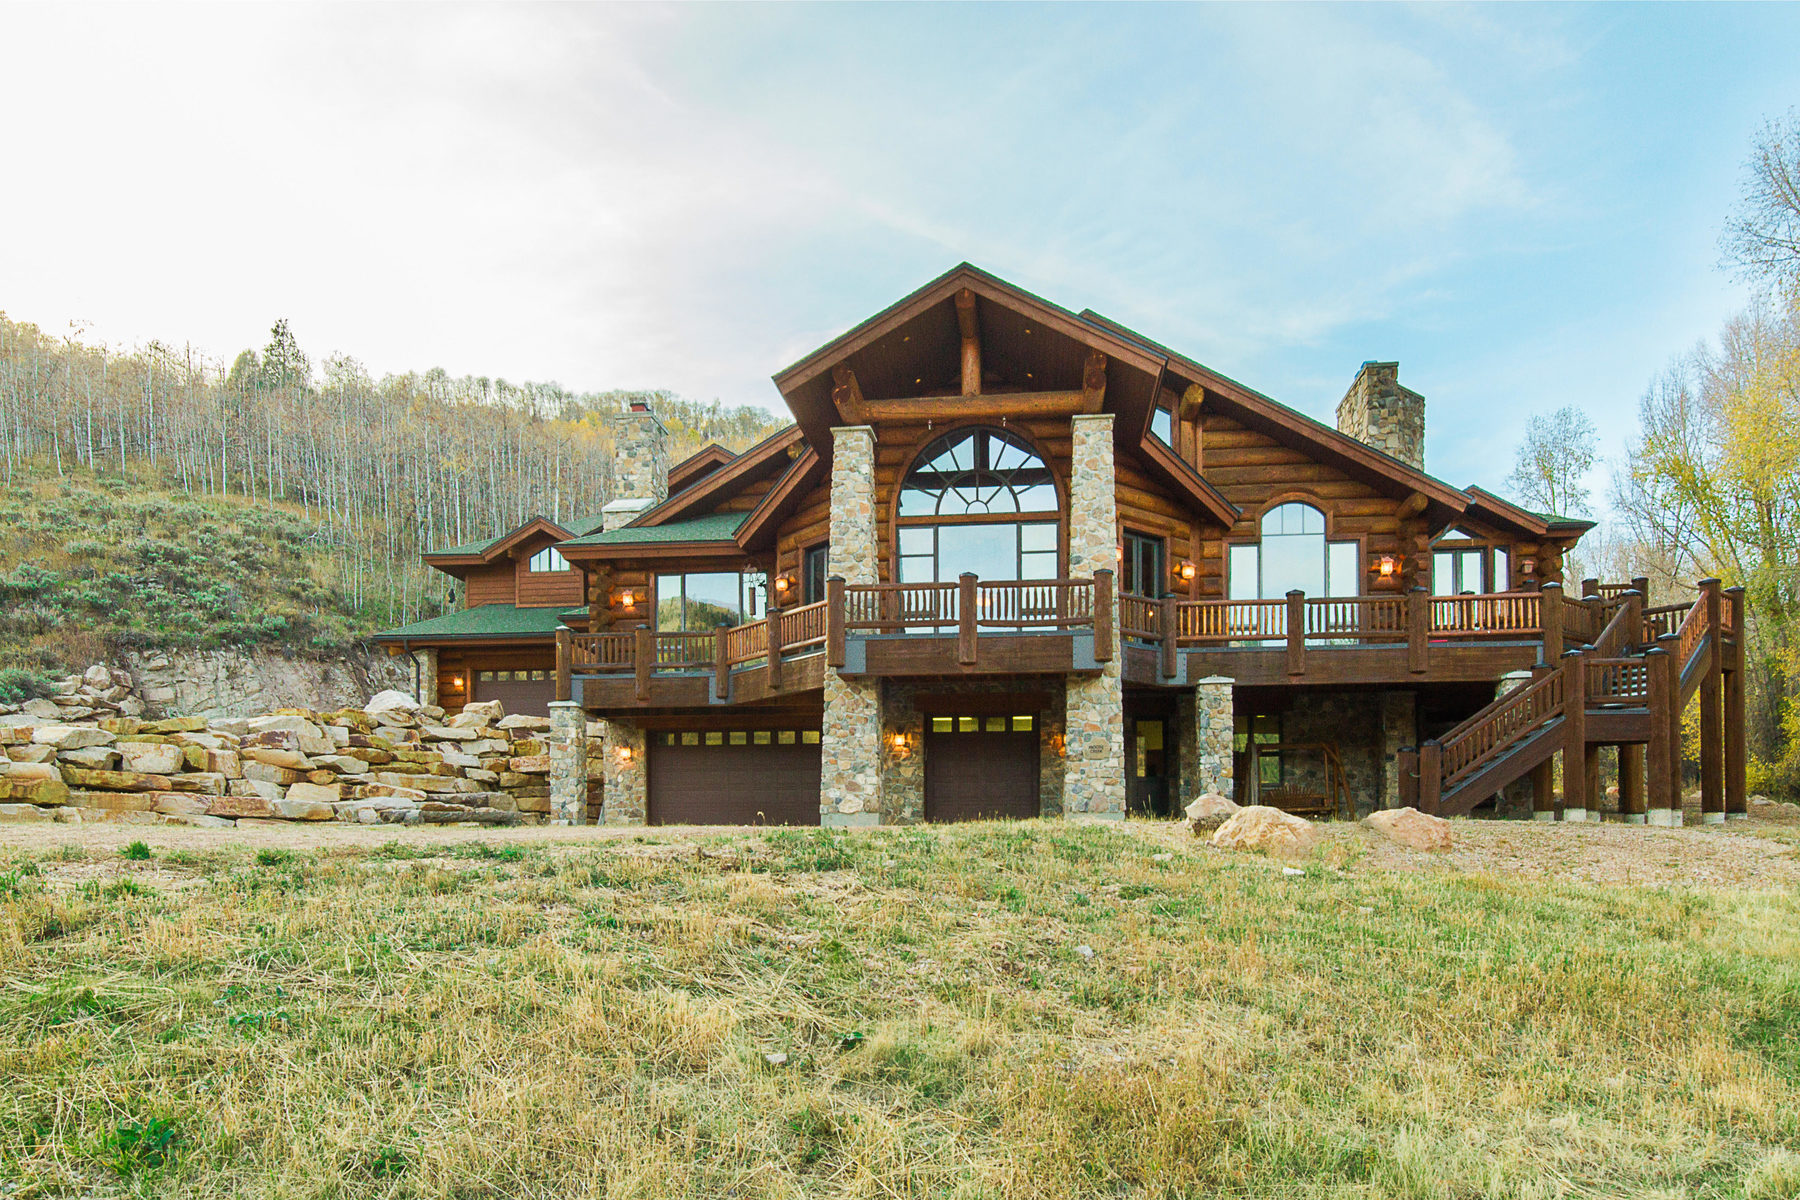 Casa Unifamiliar por un Venta en Amazing One of a Kind Log Home 3950 E Weber Canyon Rd Oakley, Utah, 84055 Estados Unidos